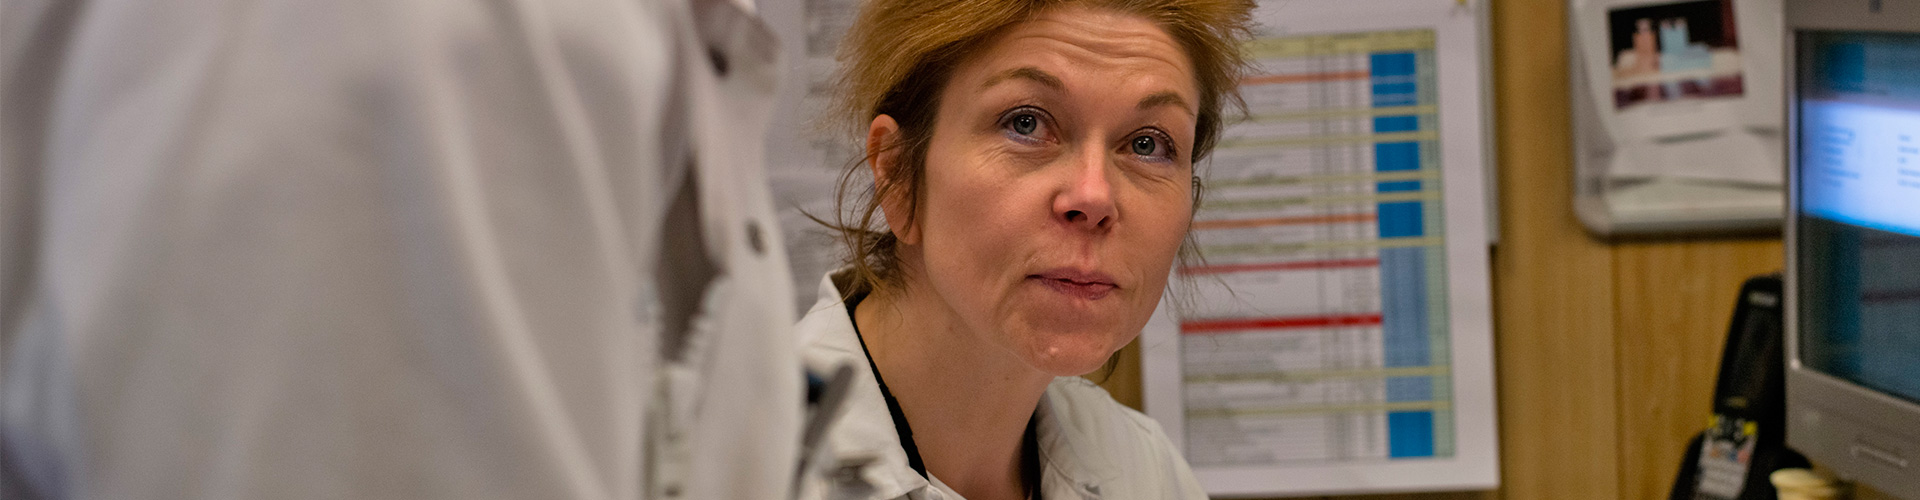 Françoise Boulanger, Radiation Safety Officer, la Hague plant.